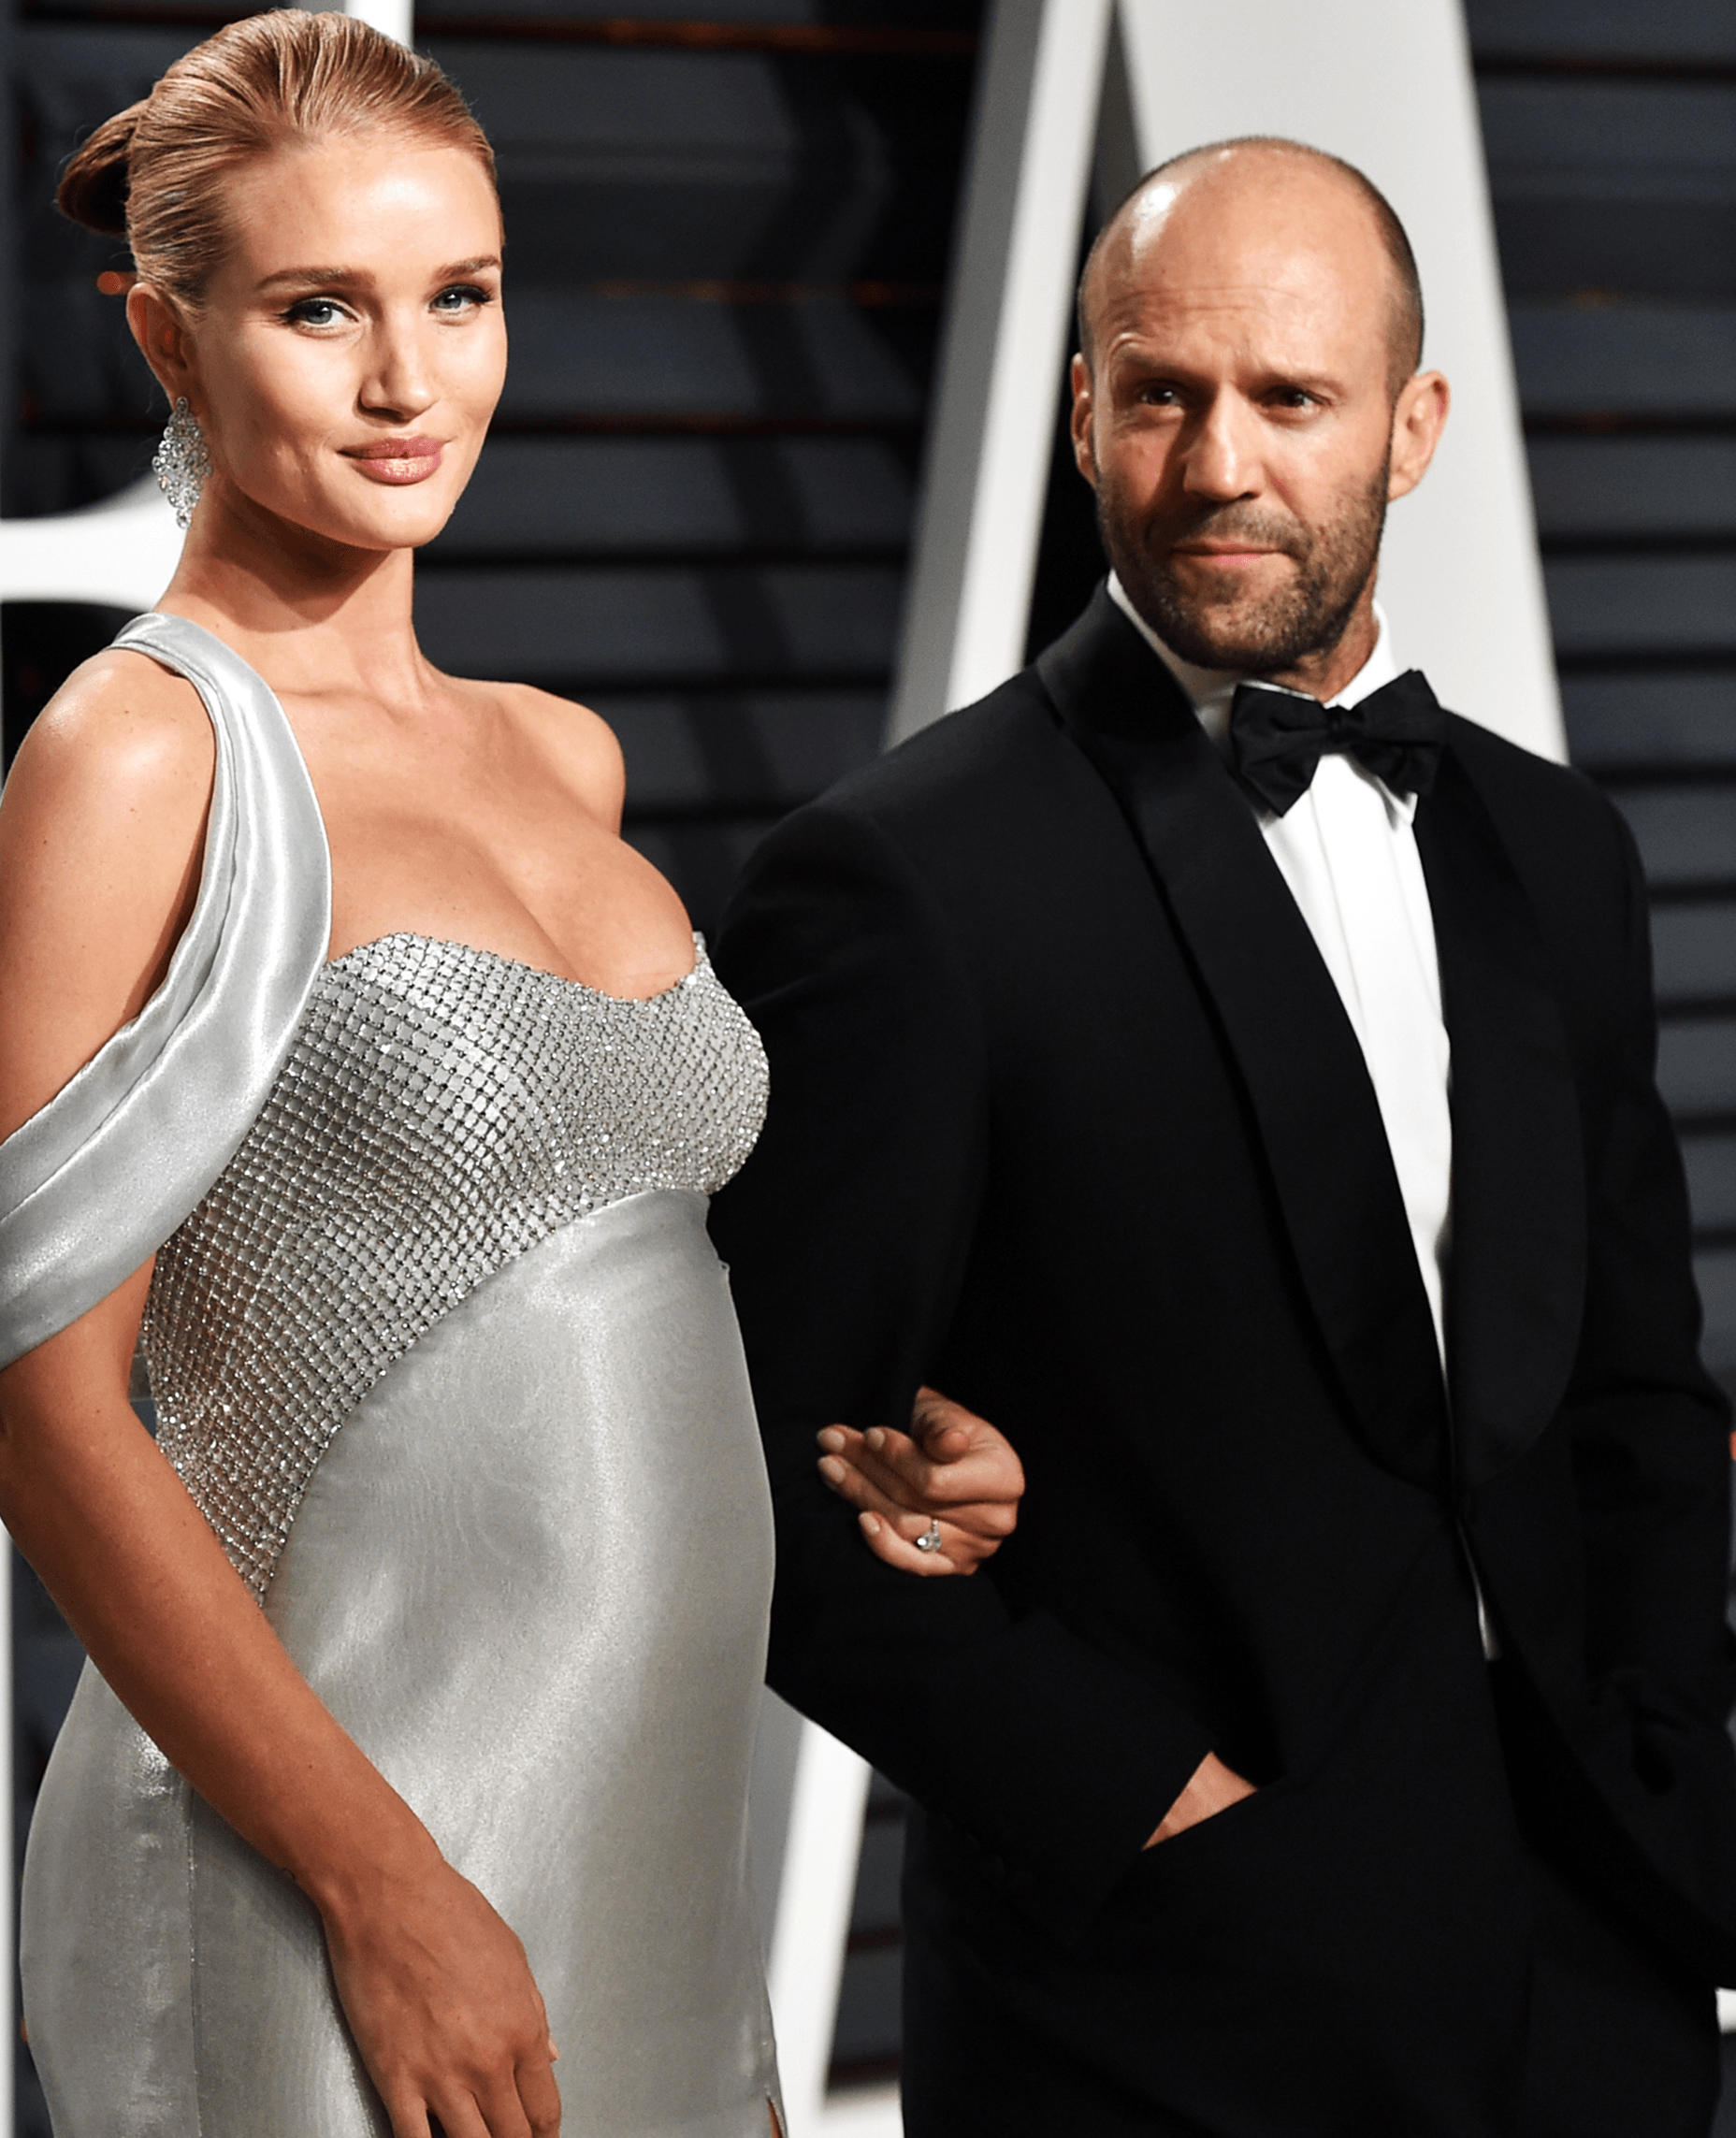 3 25 Facts That Will Make You Love Jason Statham Even More Than You Already Do